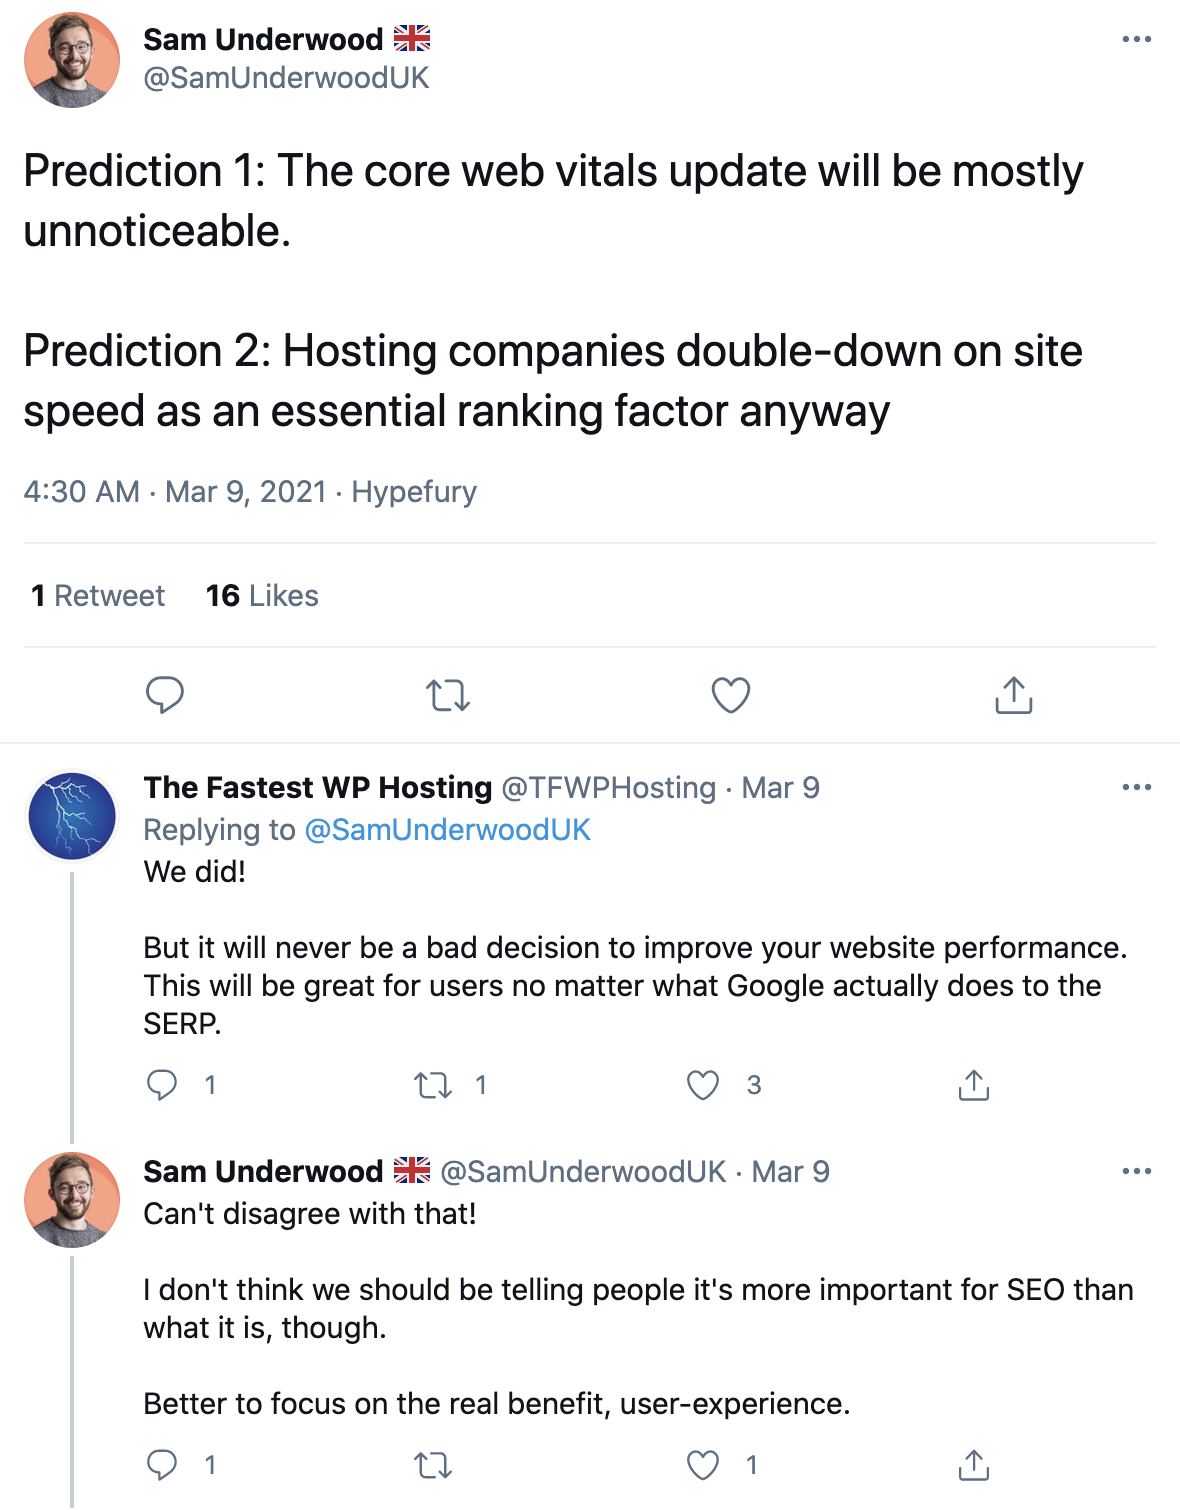 Sam Underwood prediction tweets about the core vitals update.